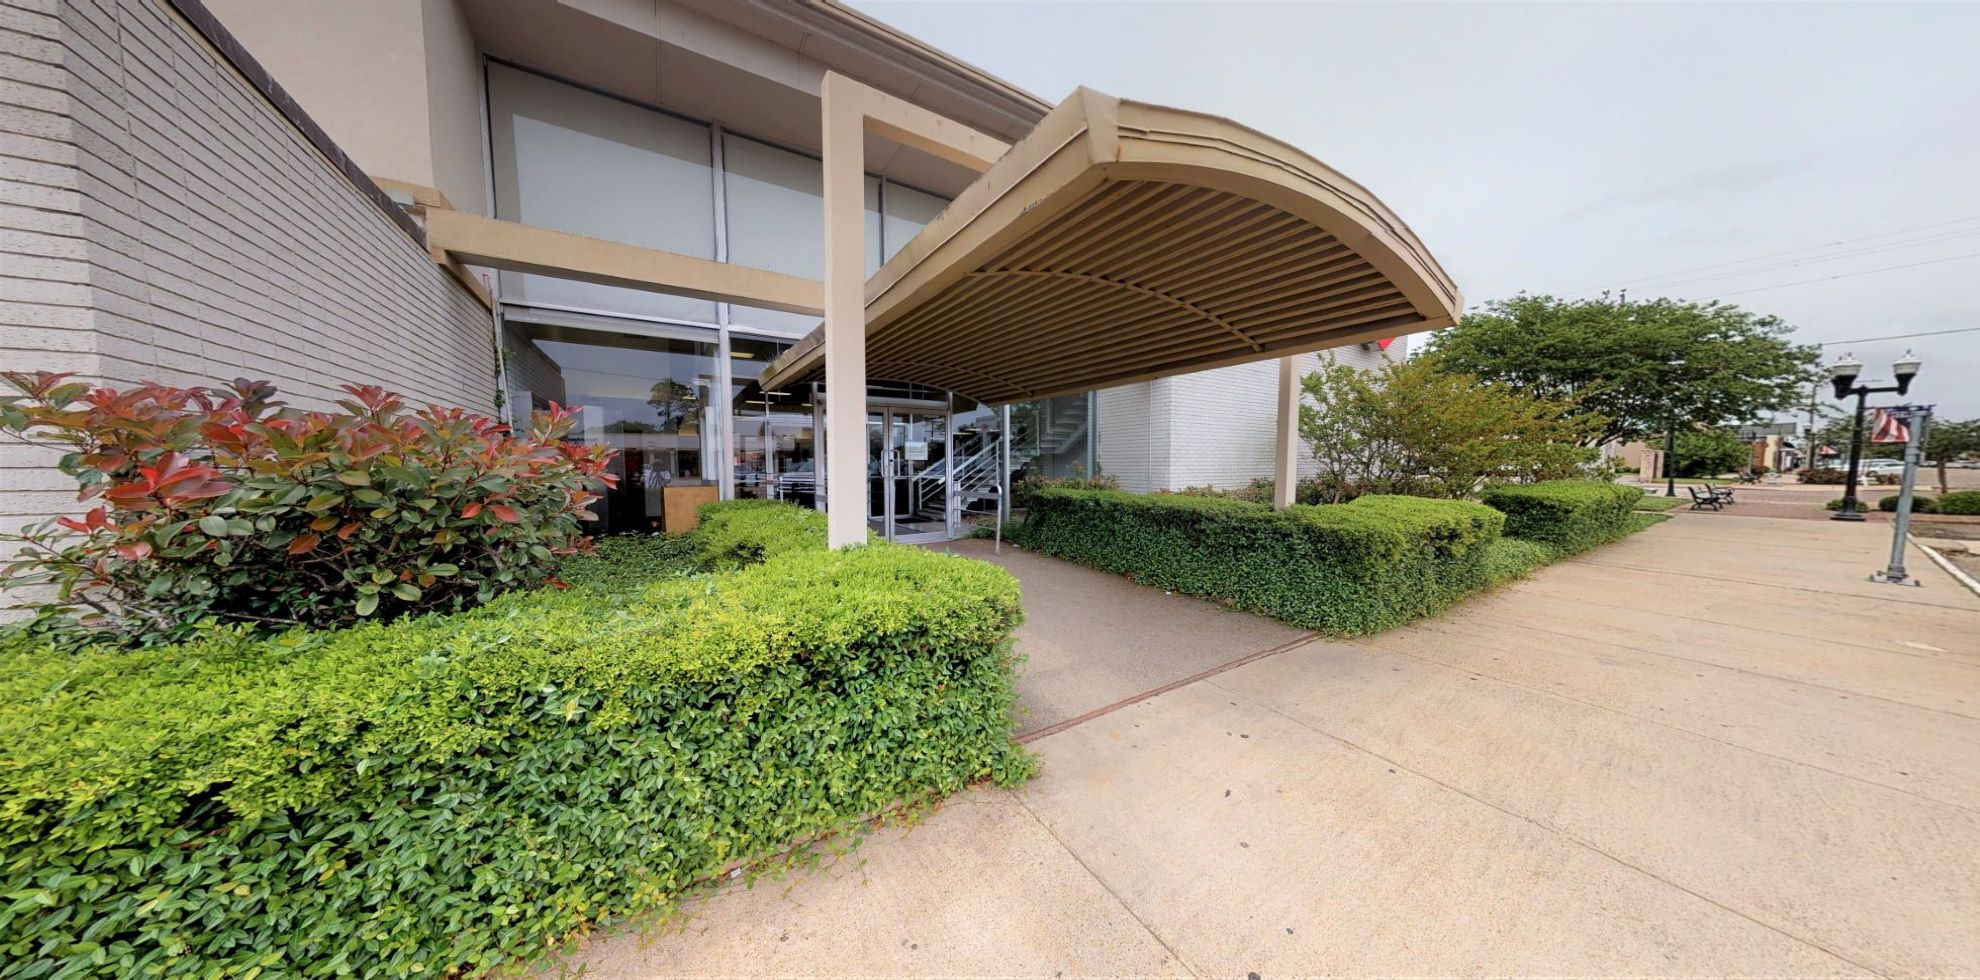 Bank of America financial center with walk-up ATM | 1308 Boston Ave, Nederland, TX 77627